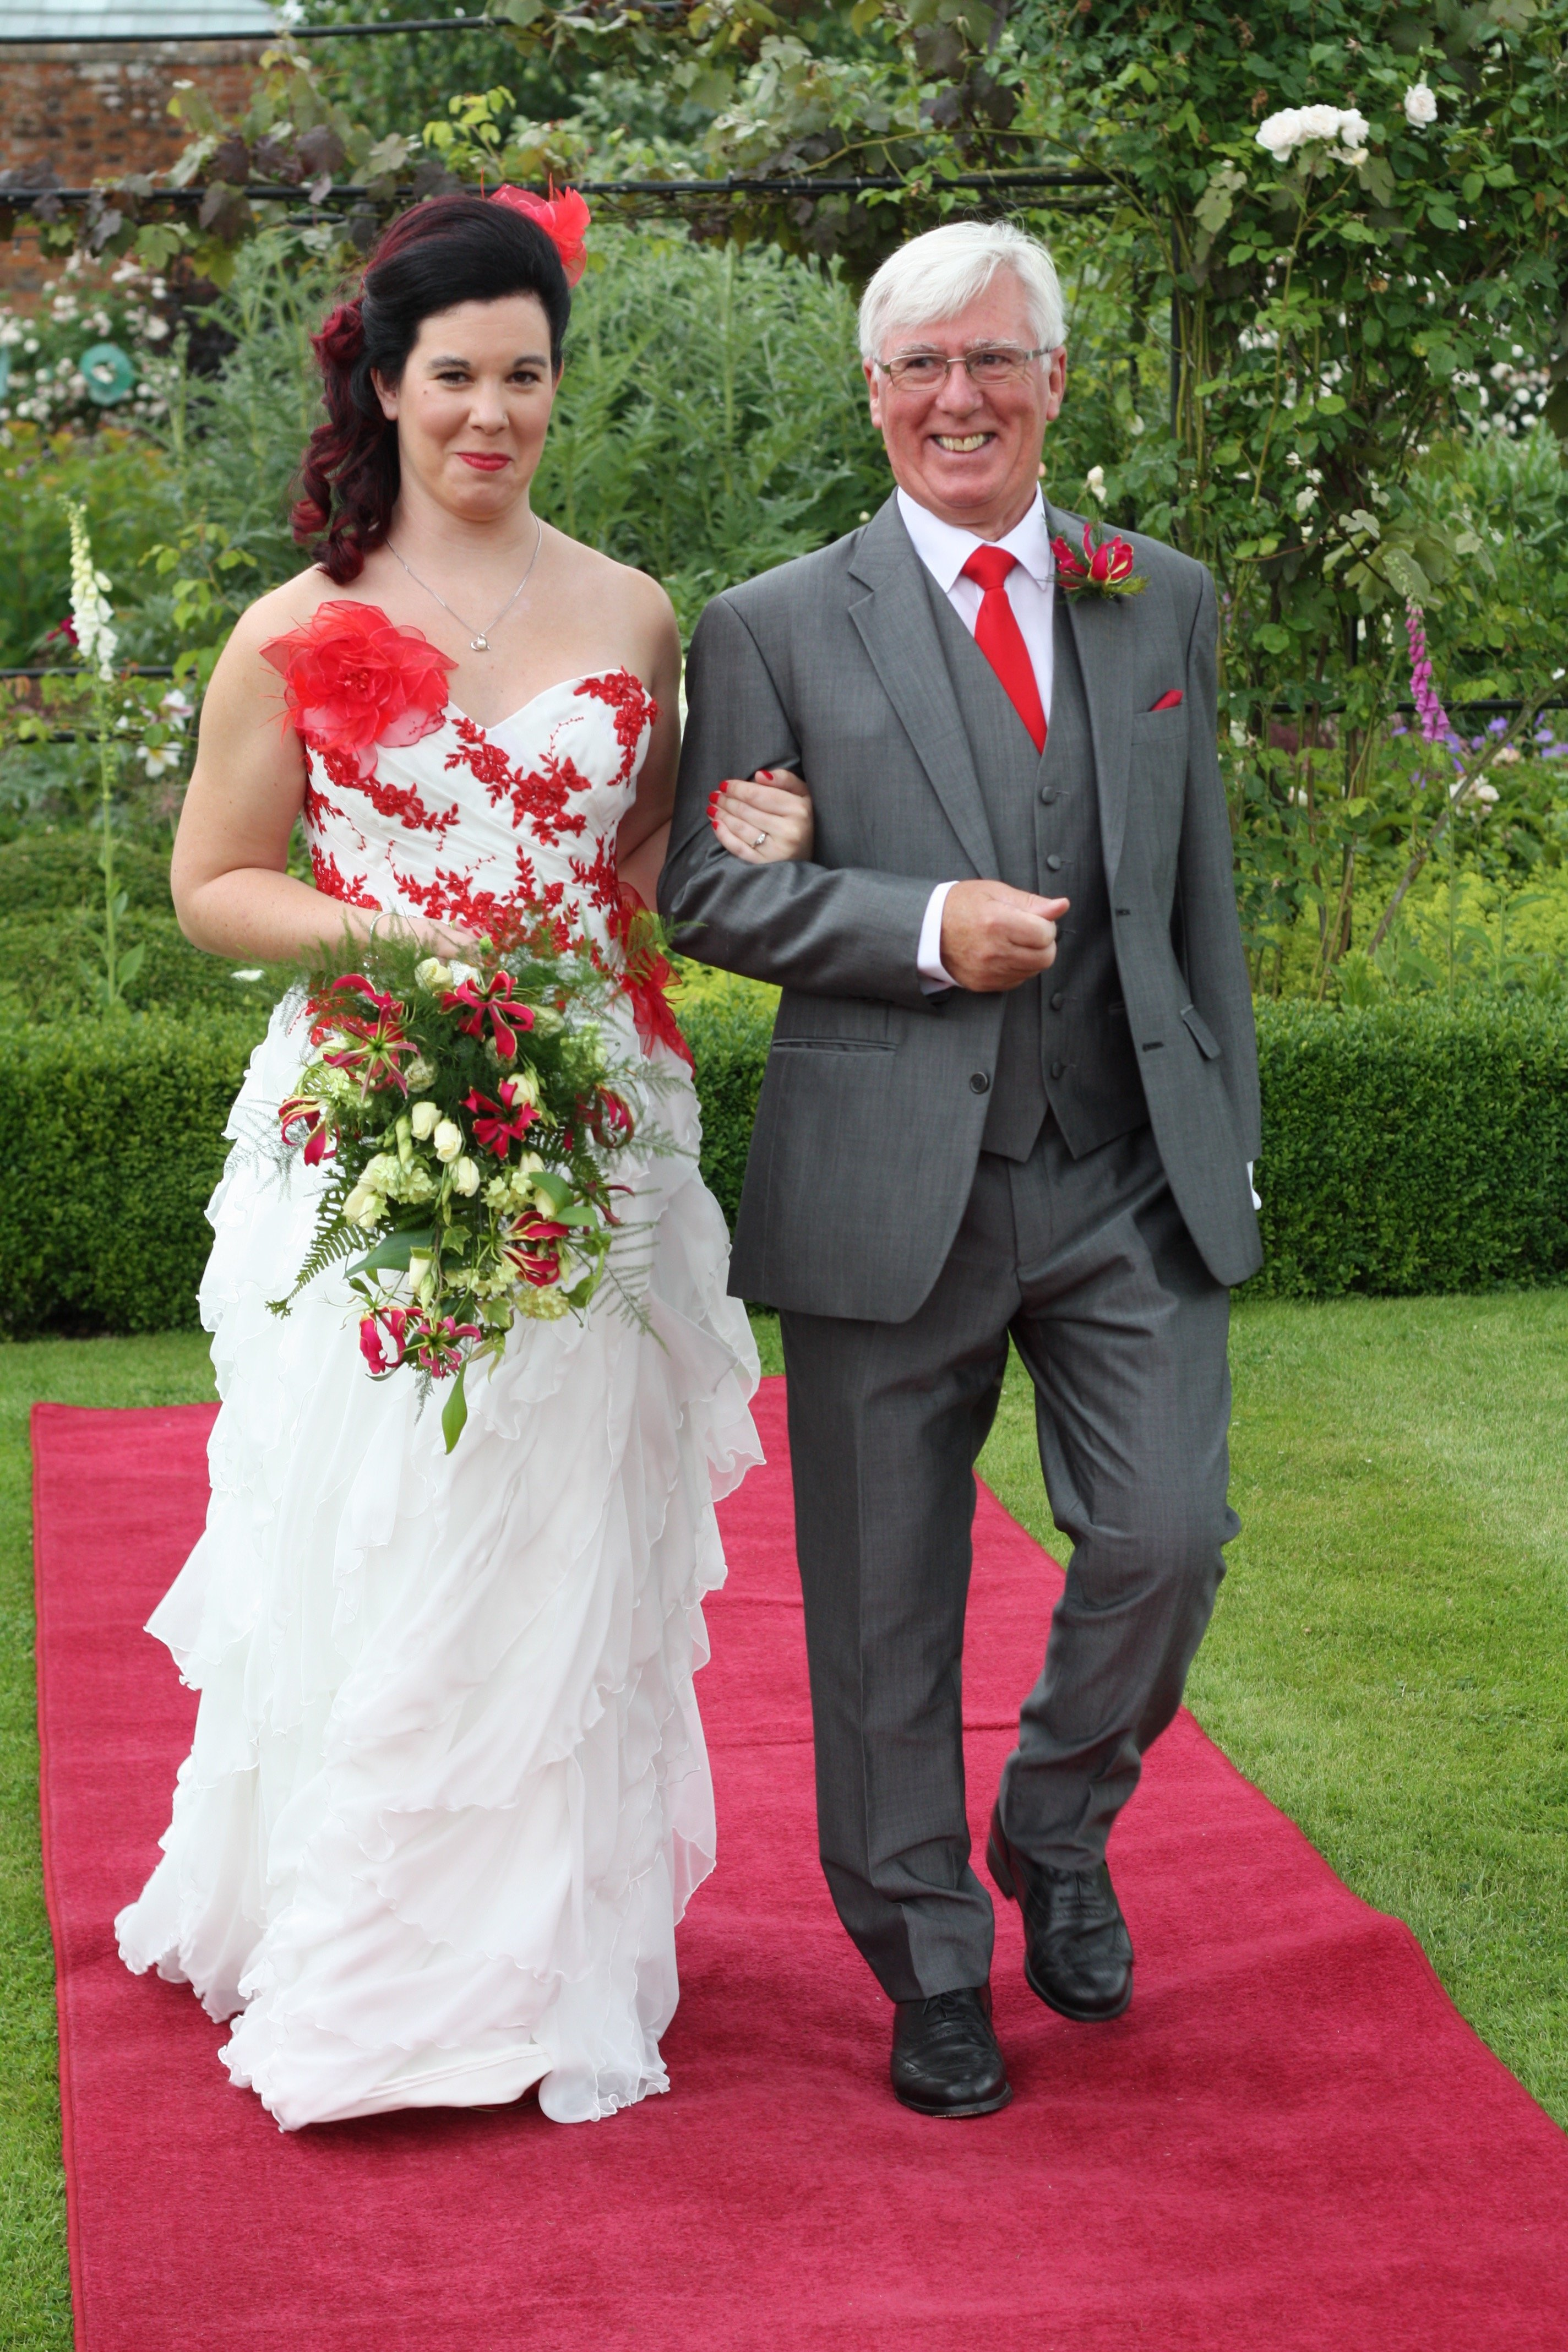 Red wedding dress, alternative bridal, colourful details, red lace